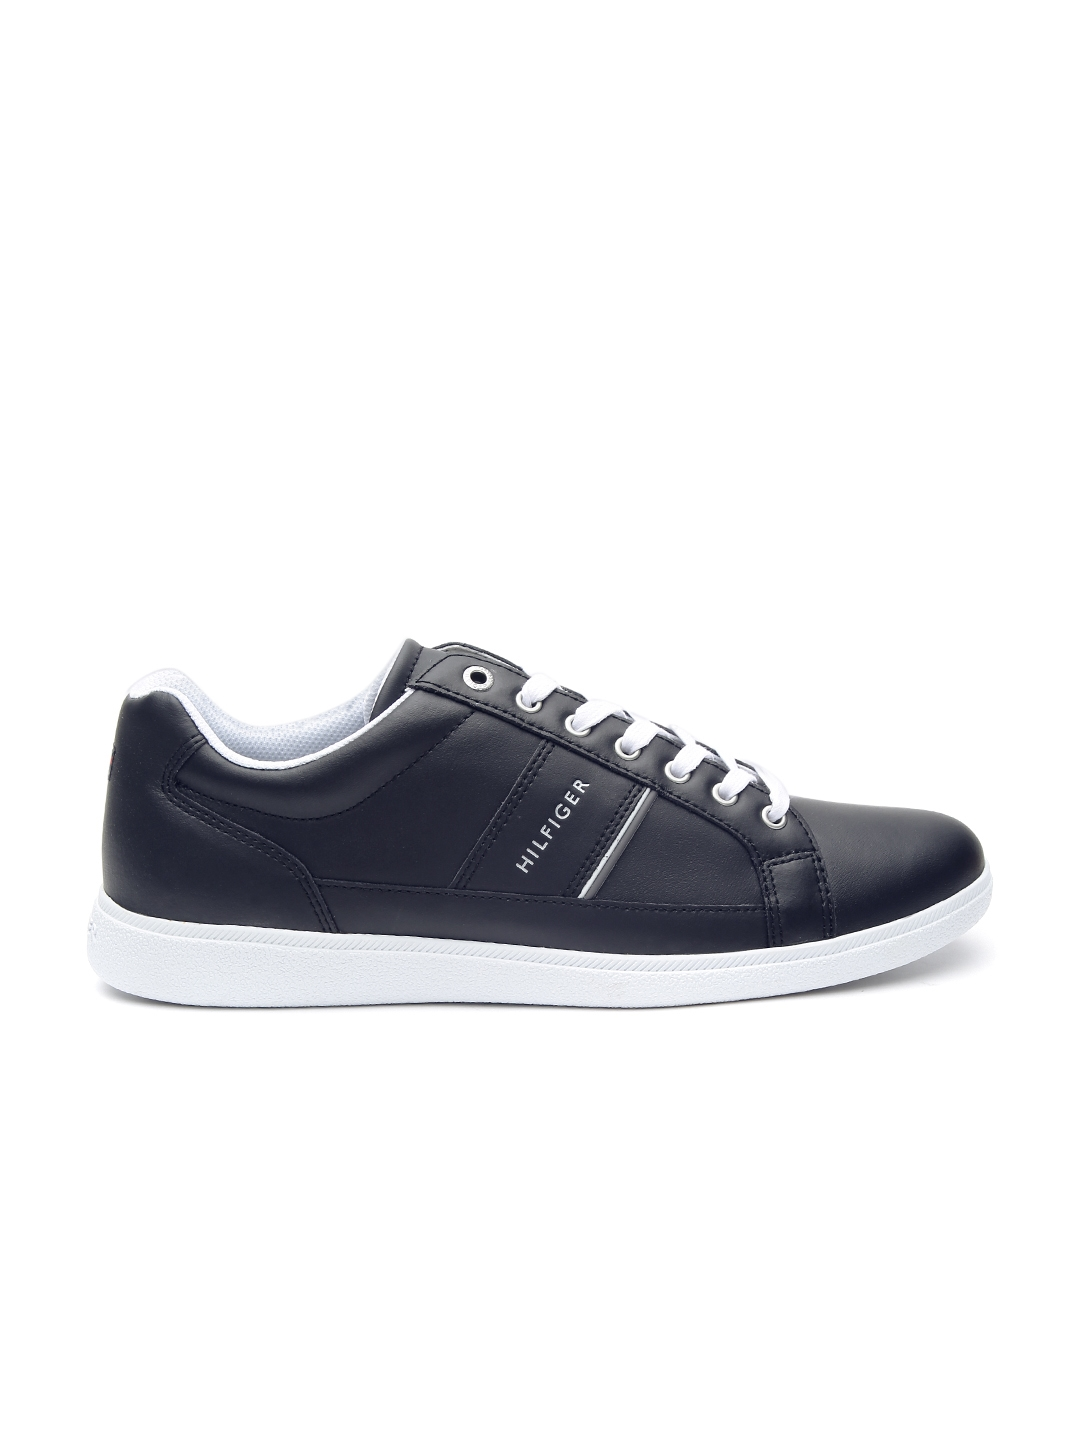 048a8c1aa499e4 Buy Tommy Hilfiger Men Black Leather Sneakers - Casual Shoes for Men ...